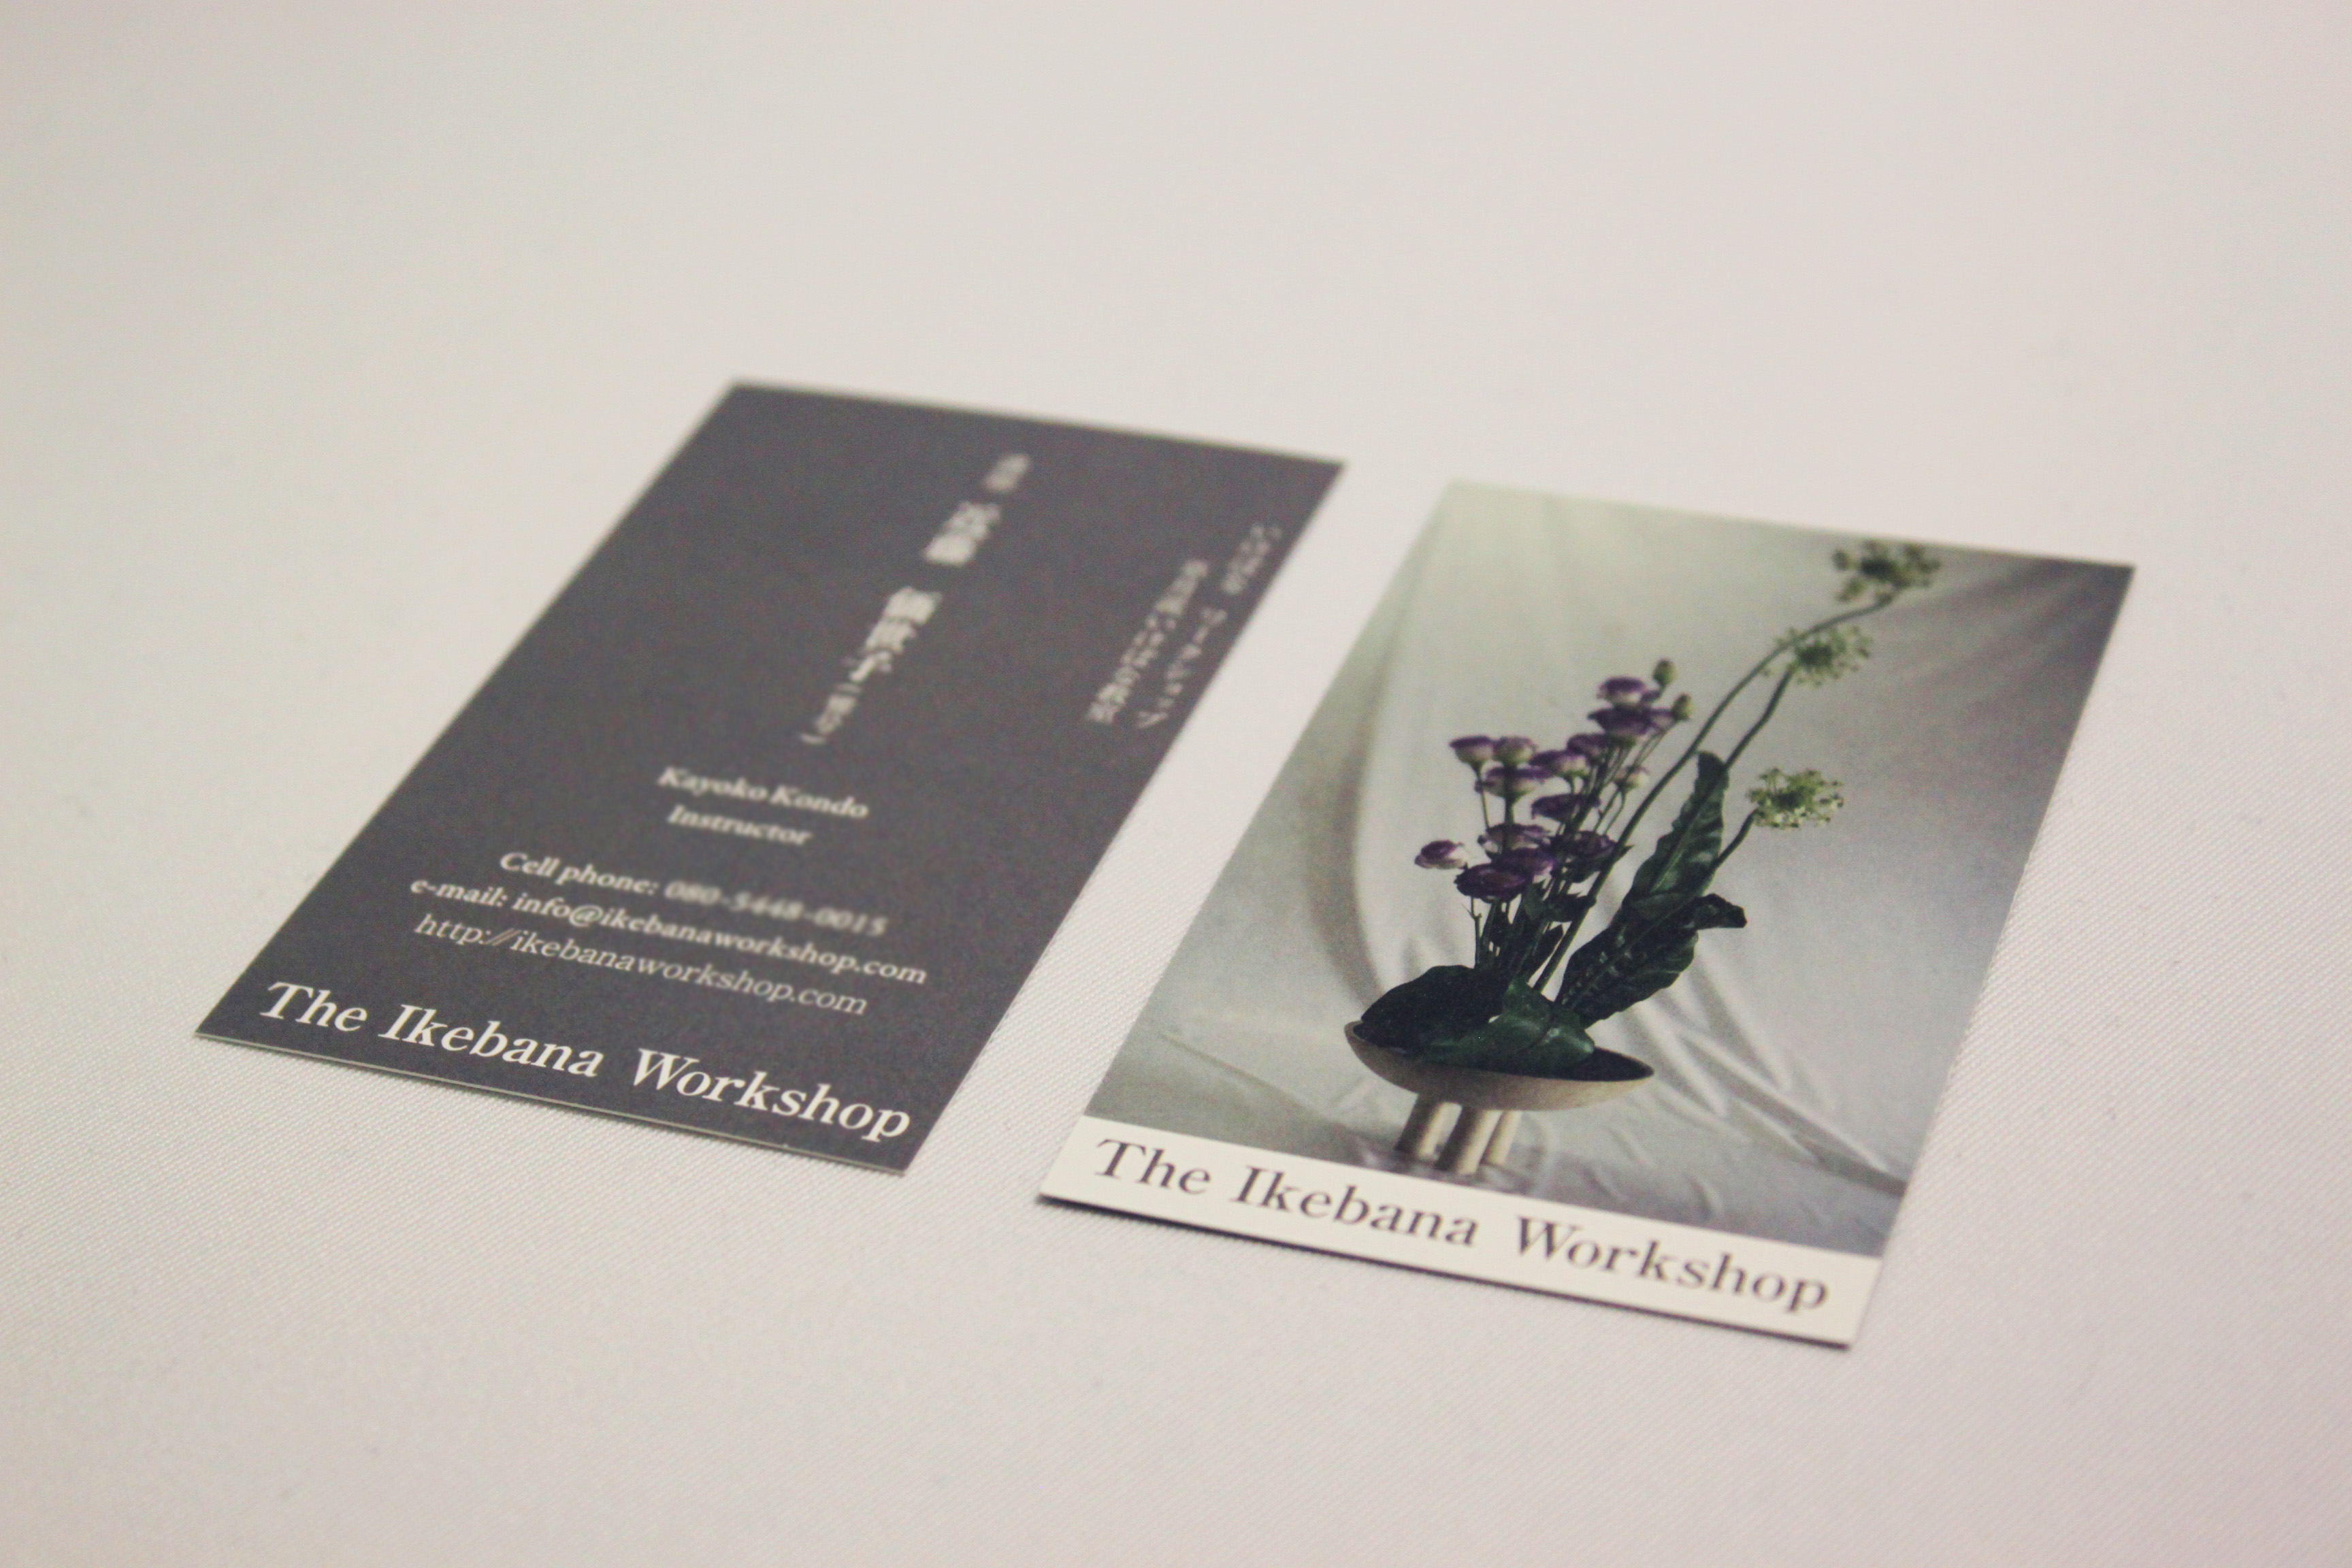 The Ikebana workshop namecard